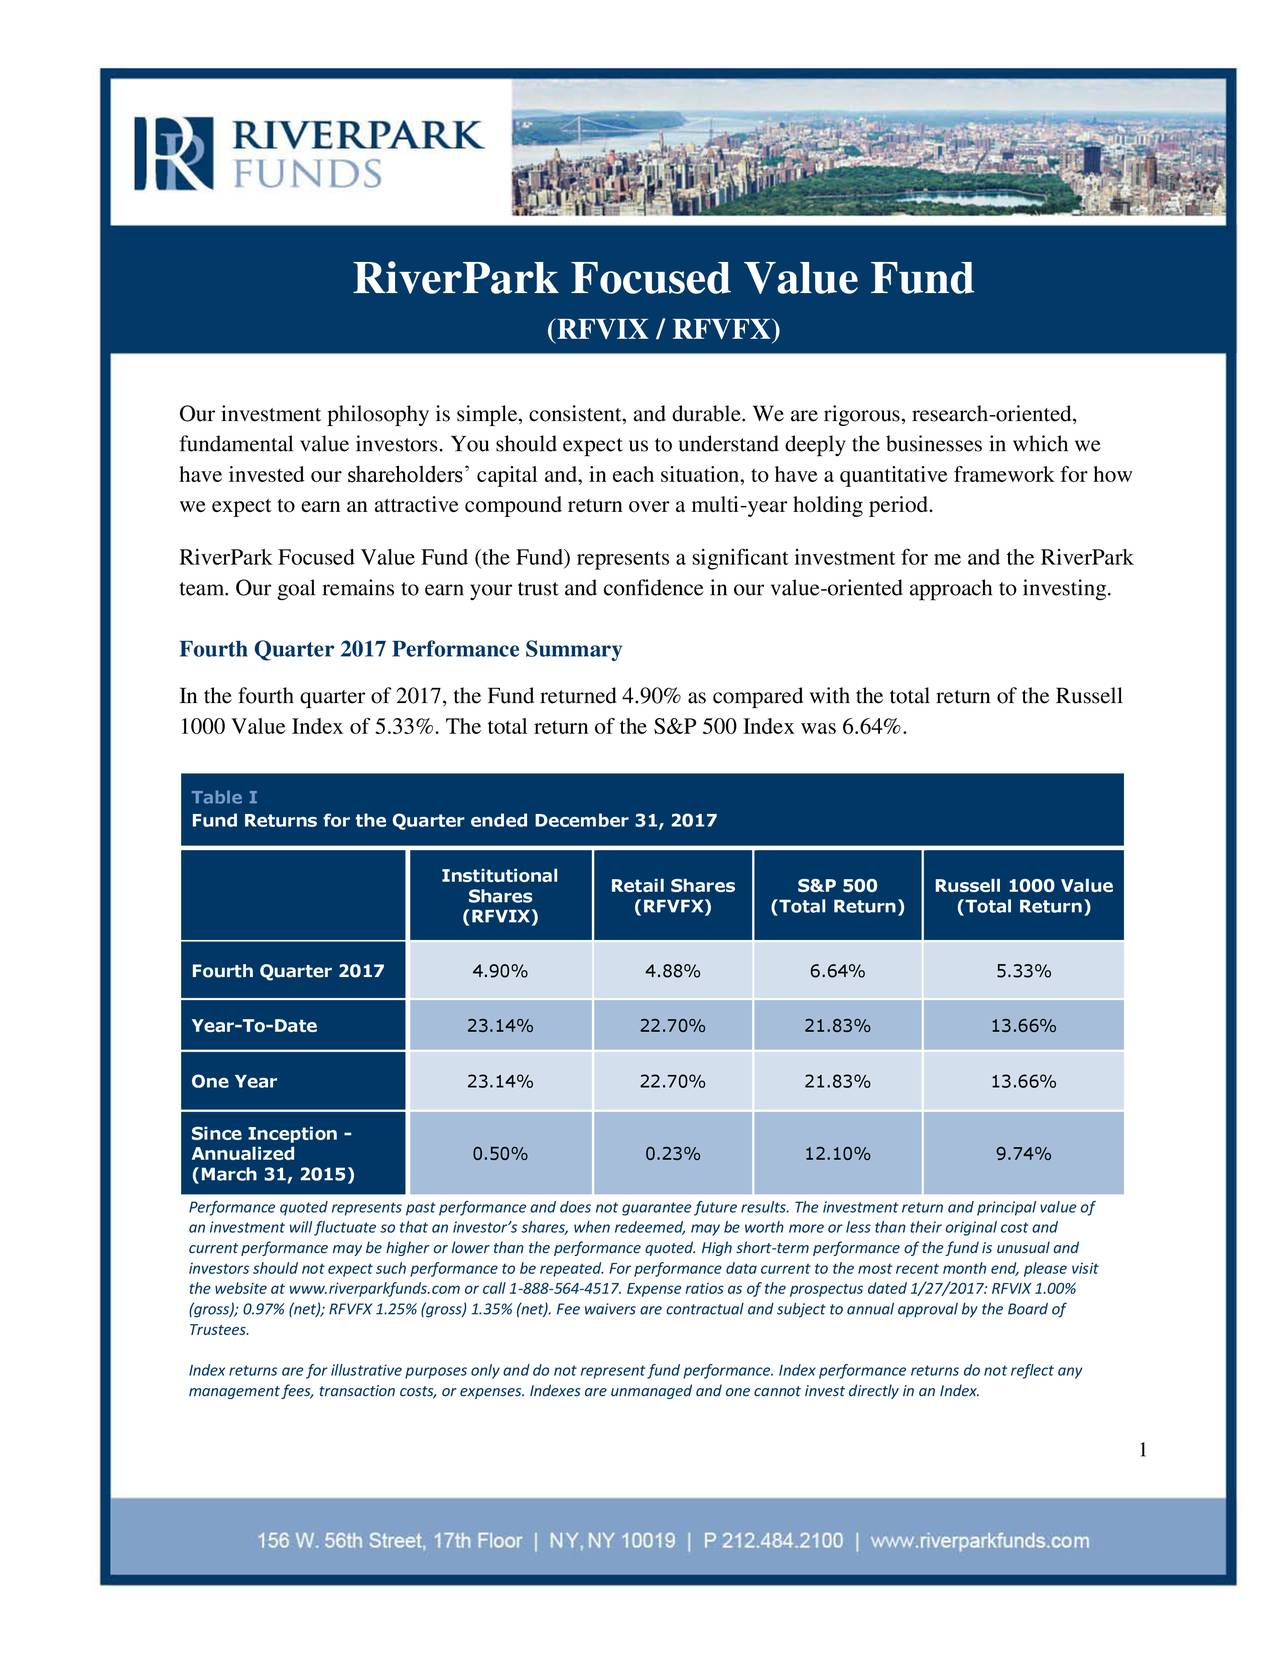 (RFVIX / RFVFX) Our investment philosophy is simple, consistent, and durable. We are rigorous, research-oriented, fundamental value investors. You should expect us to understand deeply the businesses in which we have invested our shareholders' capital and, in each situation, to have a quantitative framework for how we expect to earn an attractive compound return over a multi-year holding period. (the Fund) represents a significant investment for me and the RiverPark team. Our goal remains to earn your trust and confidence in our value-oriented approach to investing. Fourth Quarter 2017 Performance Summary In the fourth quarter of 2017, the Fund returned 4.90% as compared with the total return of the Russell 1000 Value Index of 5.33%. The total return of the S&P 500 Index was 6.64%. Table I Fund Returns for the Quarter ended December 31, 2017 Institutional Shares Retail Shares S&P 500 Russell 1000 Value (RFVFX) (Total Return) (Total Return) (RFVIX) Fourth Quarter 2017 4.90% 4.88% 6.64% 5.33% Year-To-Date 23.14% 22.70% 21.83% 13.66% One Year 23.14% 22.70% 21.83% 13.66% Since Inception - Annualized 0.50% 0.23% 12.10% 9.74% (March 31, 2015) Performance quoted represents past performance and does not guarantee future results. The investment return and principal value of an investment will fluctuate so that an investor's shares, when redeemed, may be worth more or less than their original cost and current performance may be higher or lower than the performance quoted. High short-term performance of the fund is unusual and investors should not expect such performance to be repeated. For performance data current to the most recent month end, please visit the website at www.riverparkfunds.com or call 1-888-564-4517. Expense ratios as of the prospectus dated 1/27/2017: RFVIX 1.00% (gross); 0.97% (net); RFVFX 1.25% (gross) 1.35% (net). Fee waivers are contractual and subject to annual approval by the Board of Trustees. Index returns are for illustrative purposes only and do not represent fund performance. Index performance returns do not reflect any management fees, transaction costs, or expenses. Indexes are unmanaged and one cannot invest directly in an Index. 1